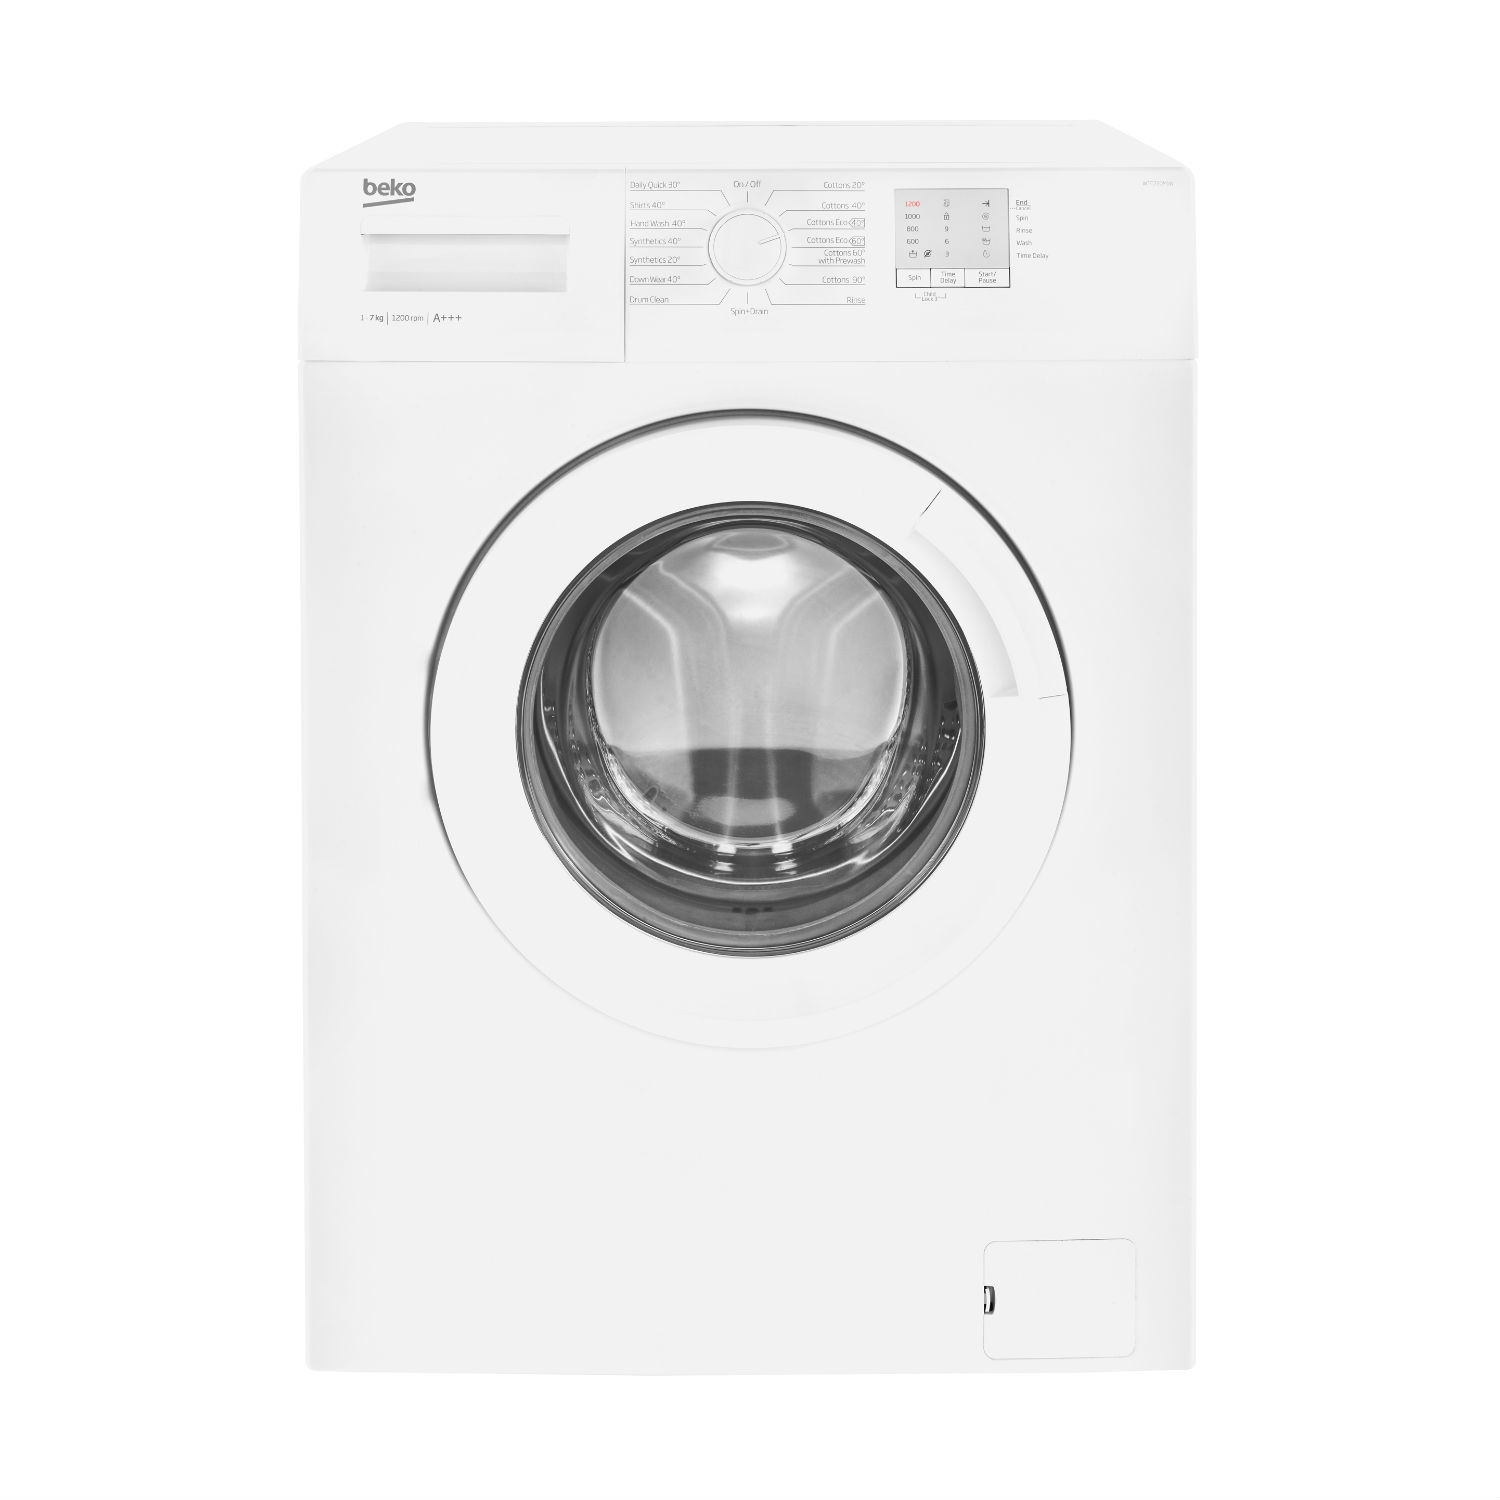 Beko 7kg 1200 Washing Machine - White - A+++ Energy Rated - 0